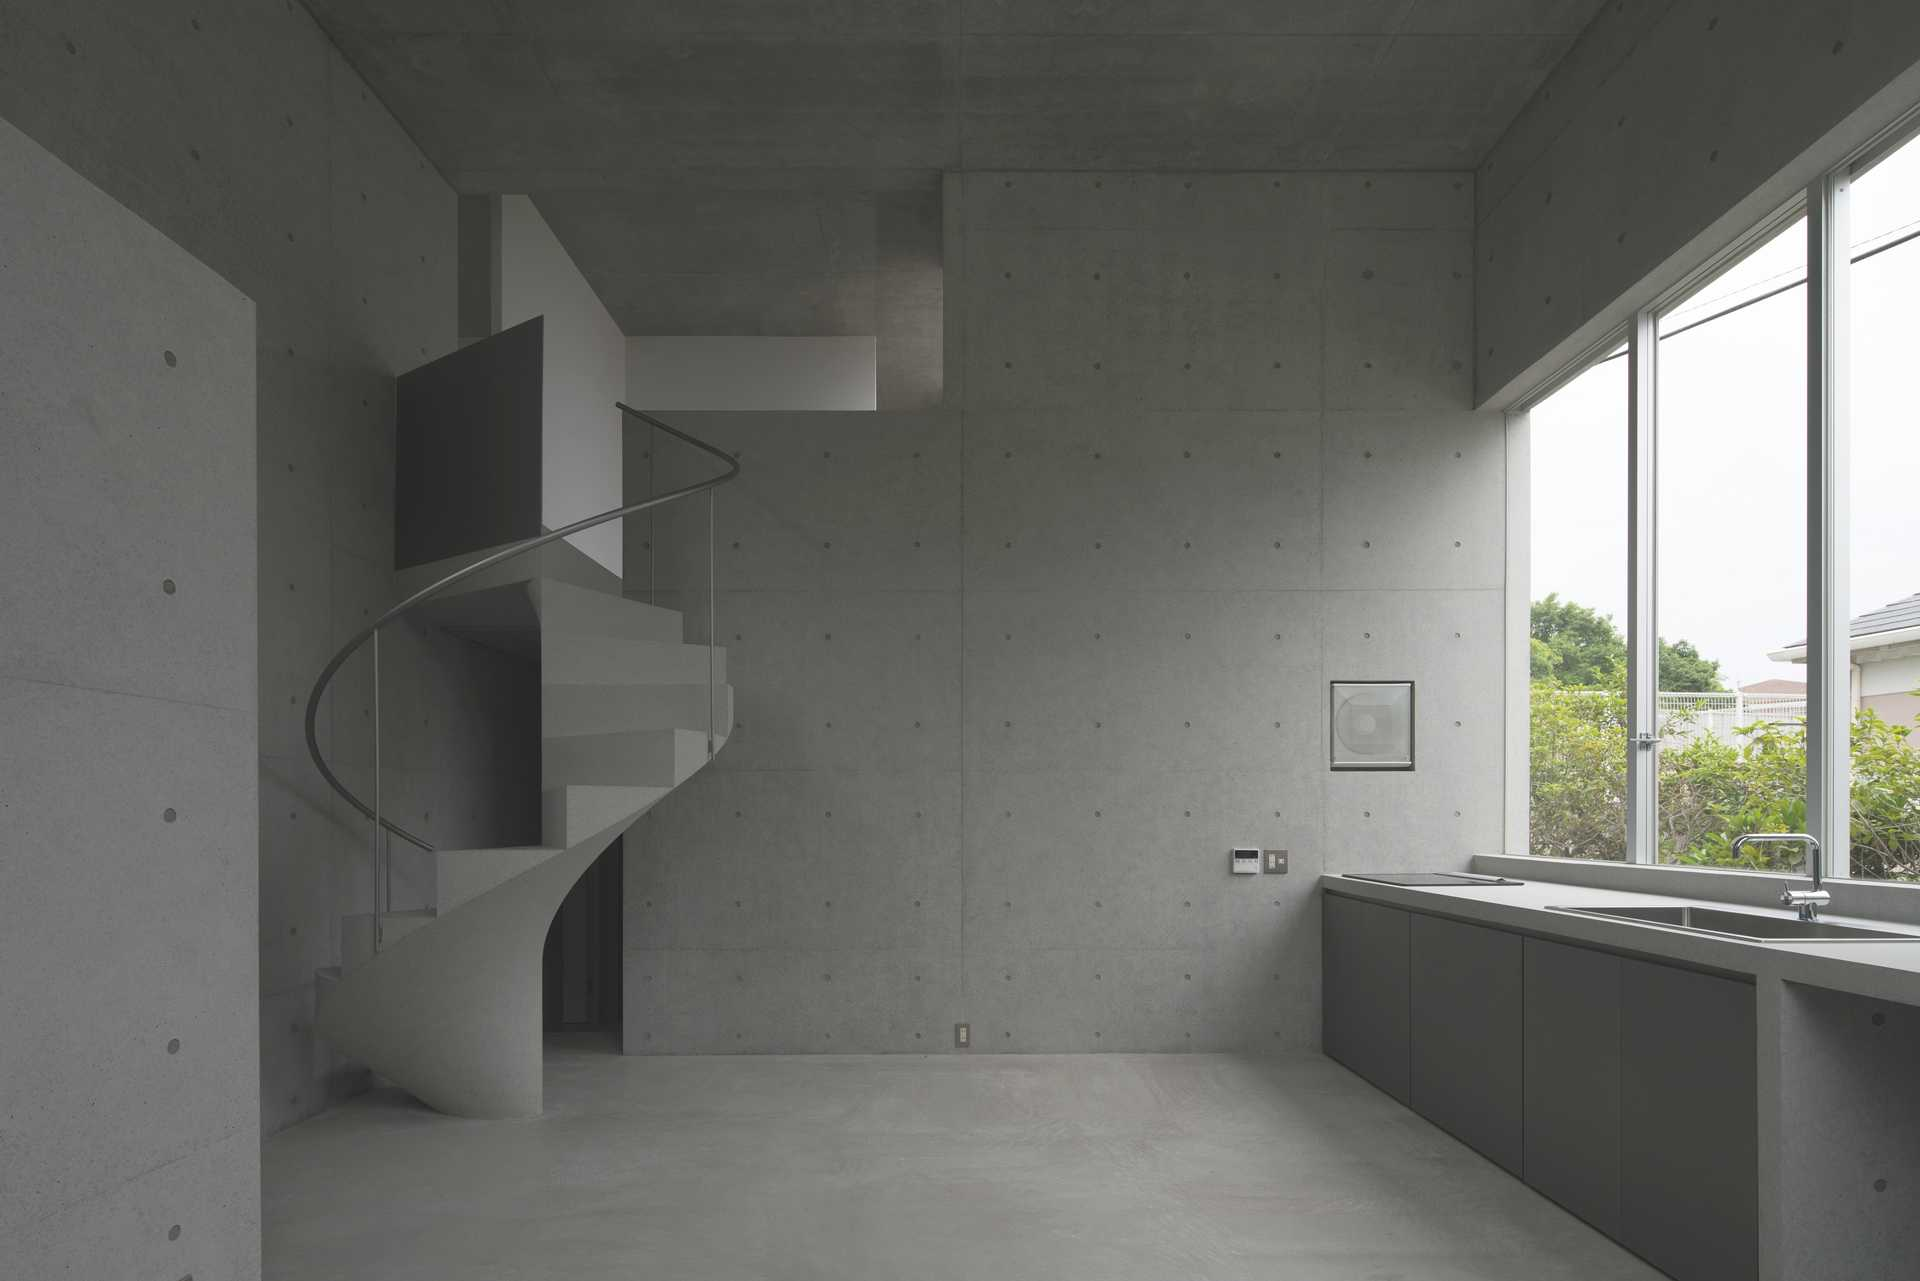 Concrete House  - 27 6 34